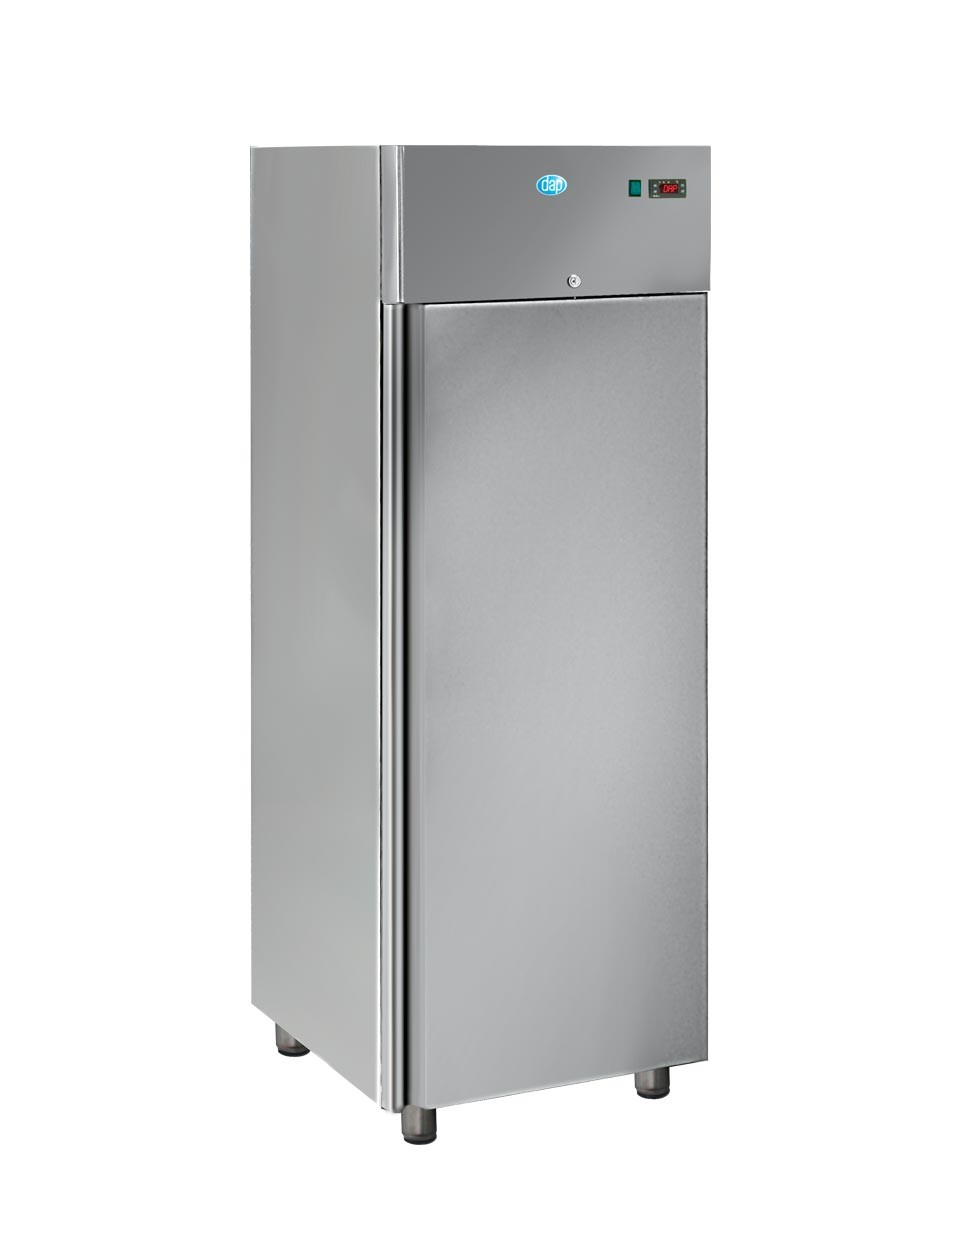 Gastronorme 400 L - GN 1/1